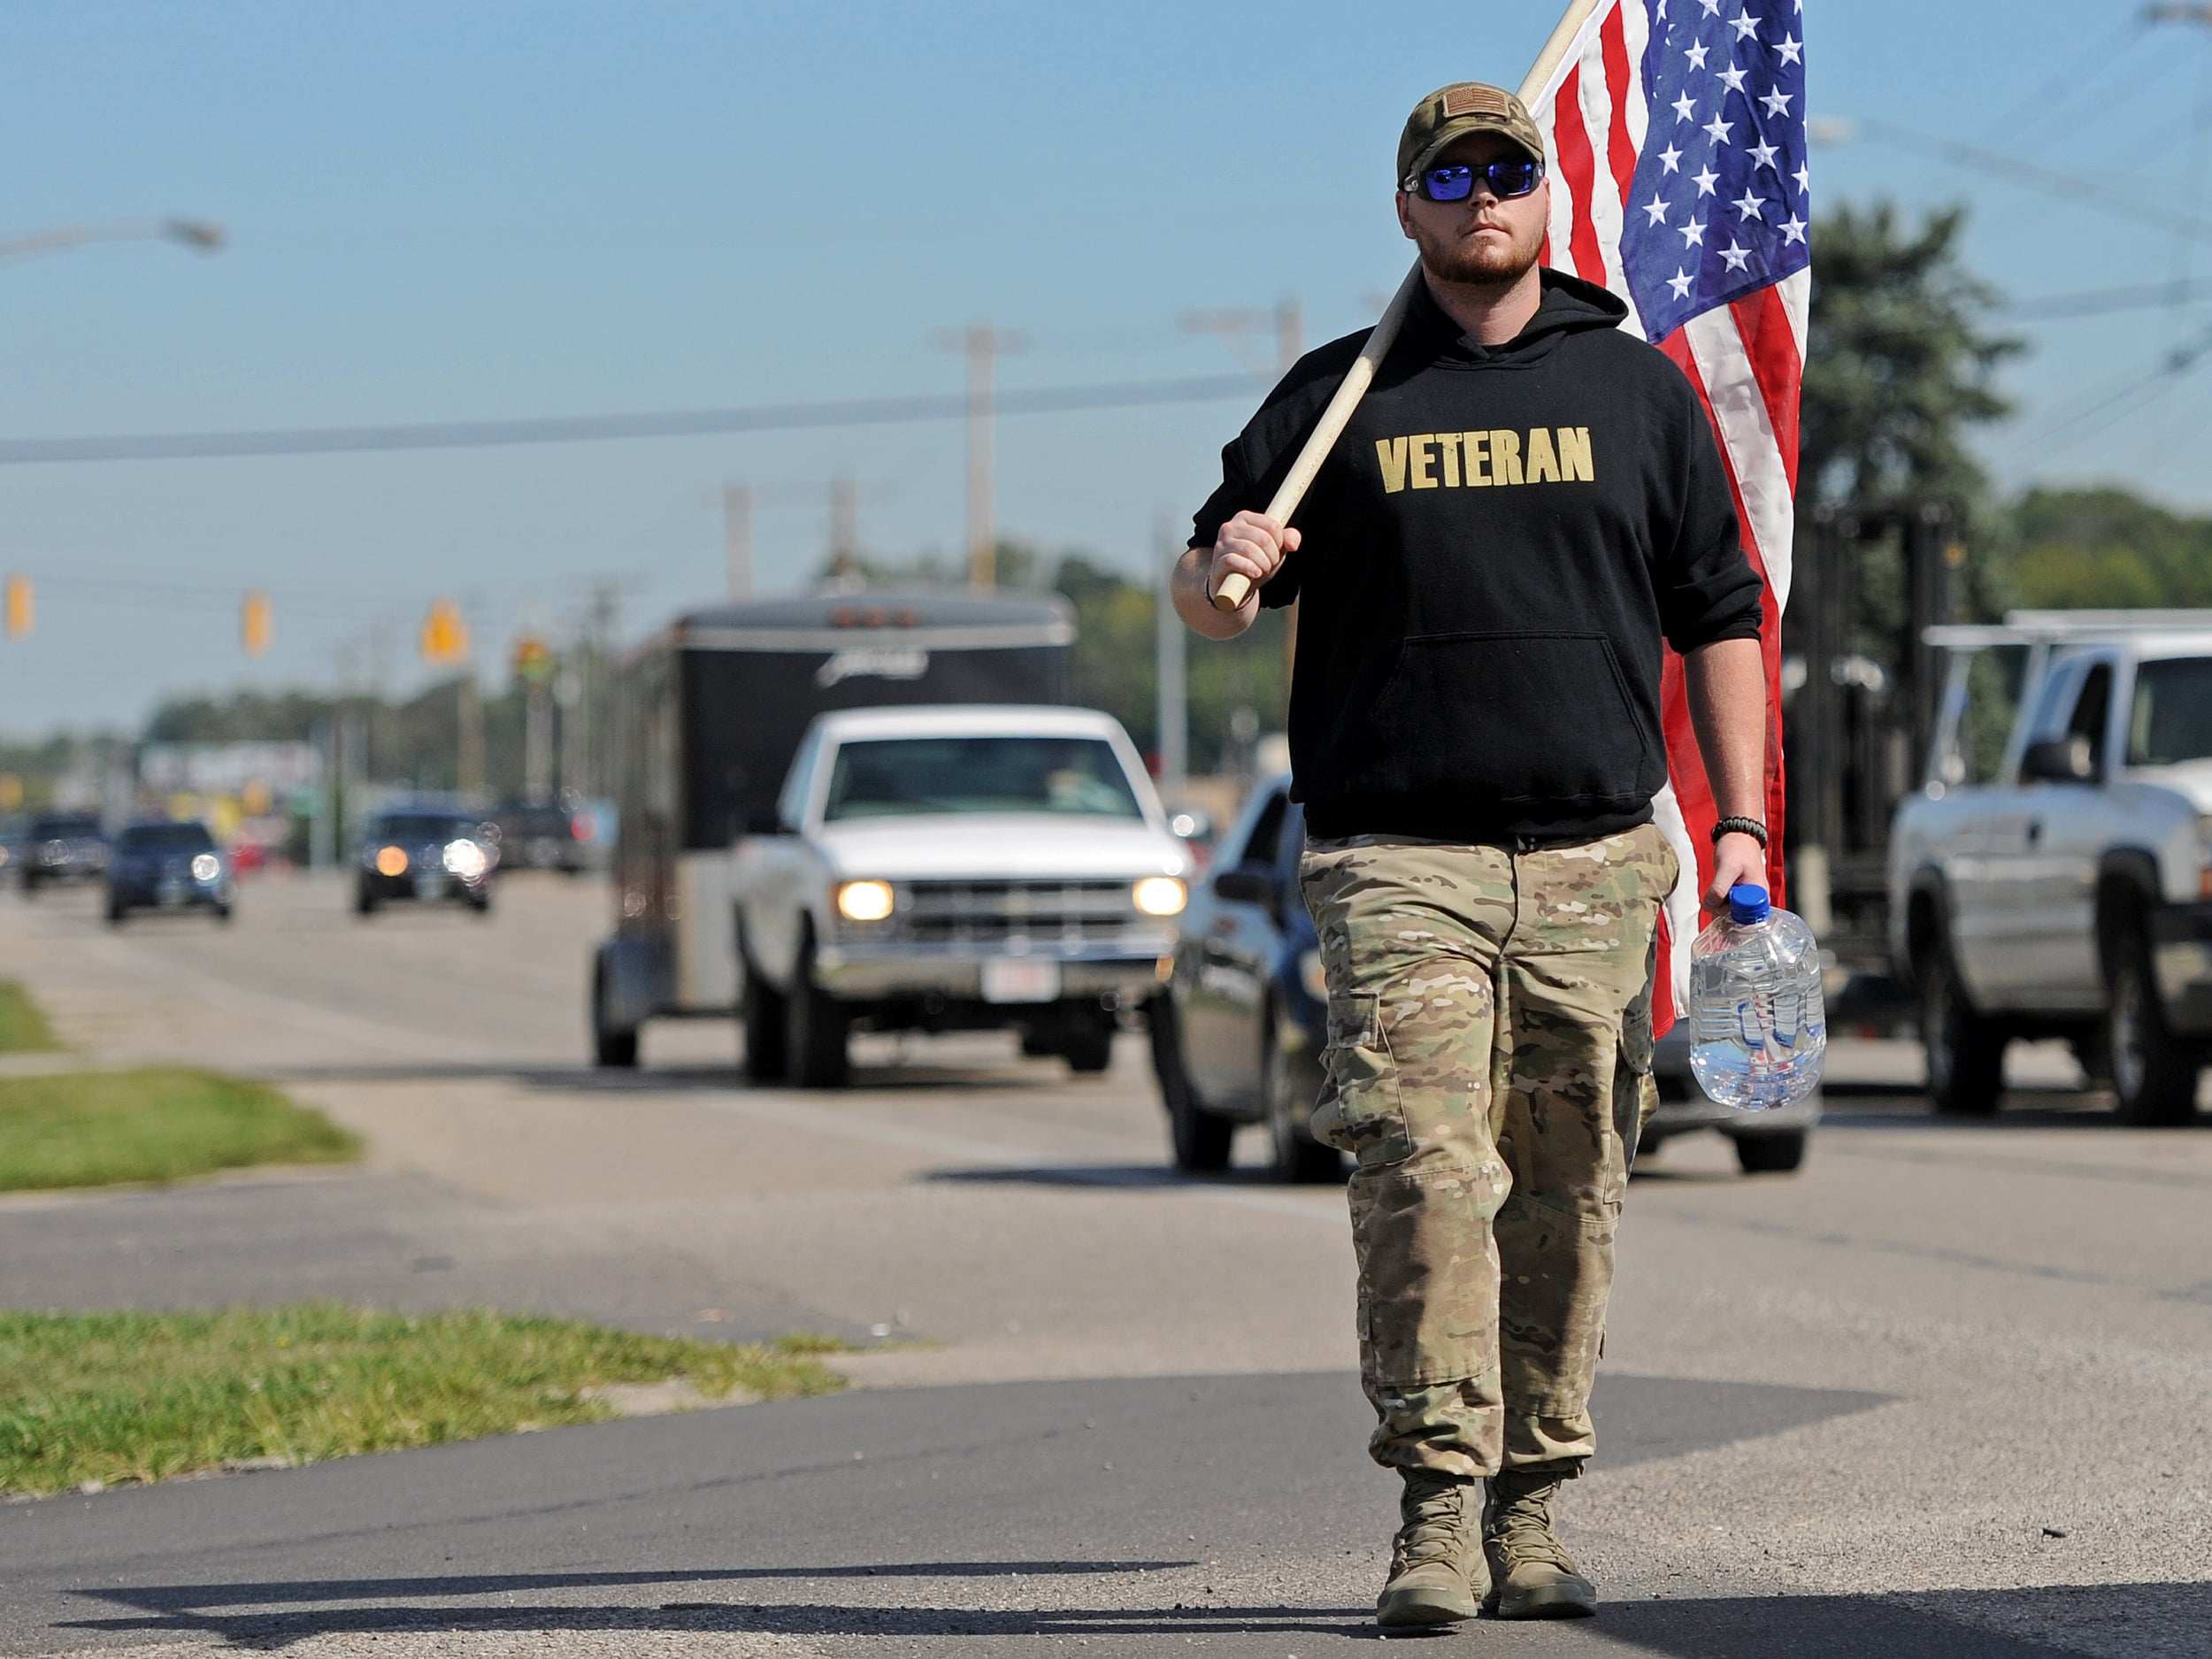 Air Force veteran Isaac Gray walked up and down Bridge Street on Friday to serve as a visual reminder that today is the anniversary of the Sept. 11 attack that happened 14 years ago today.